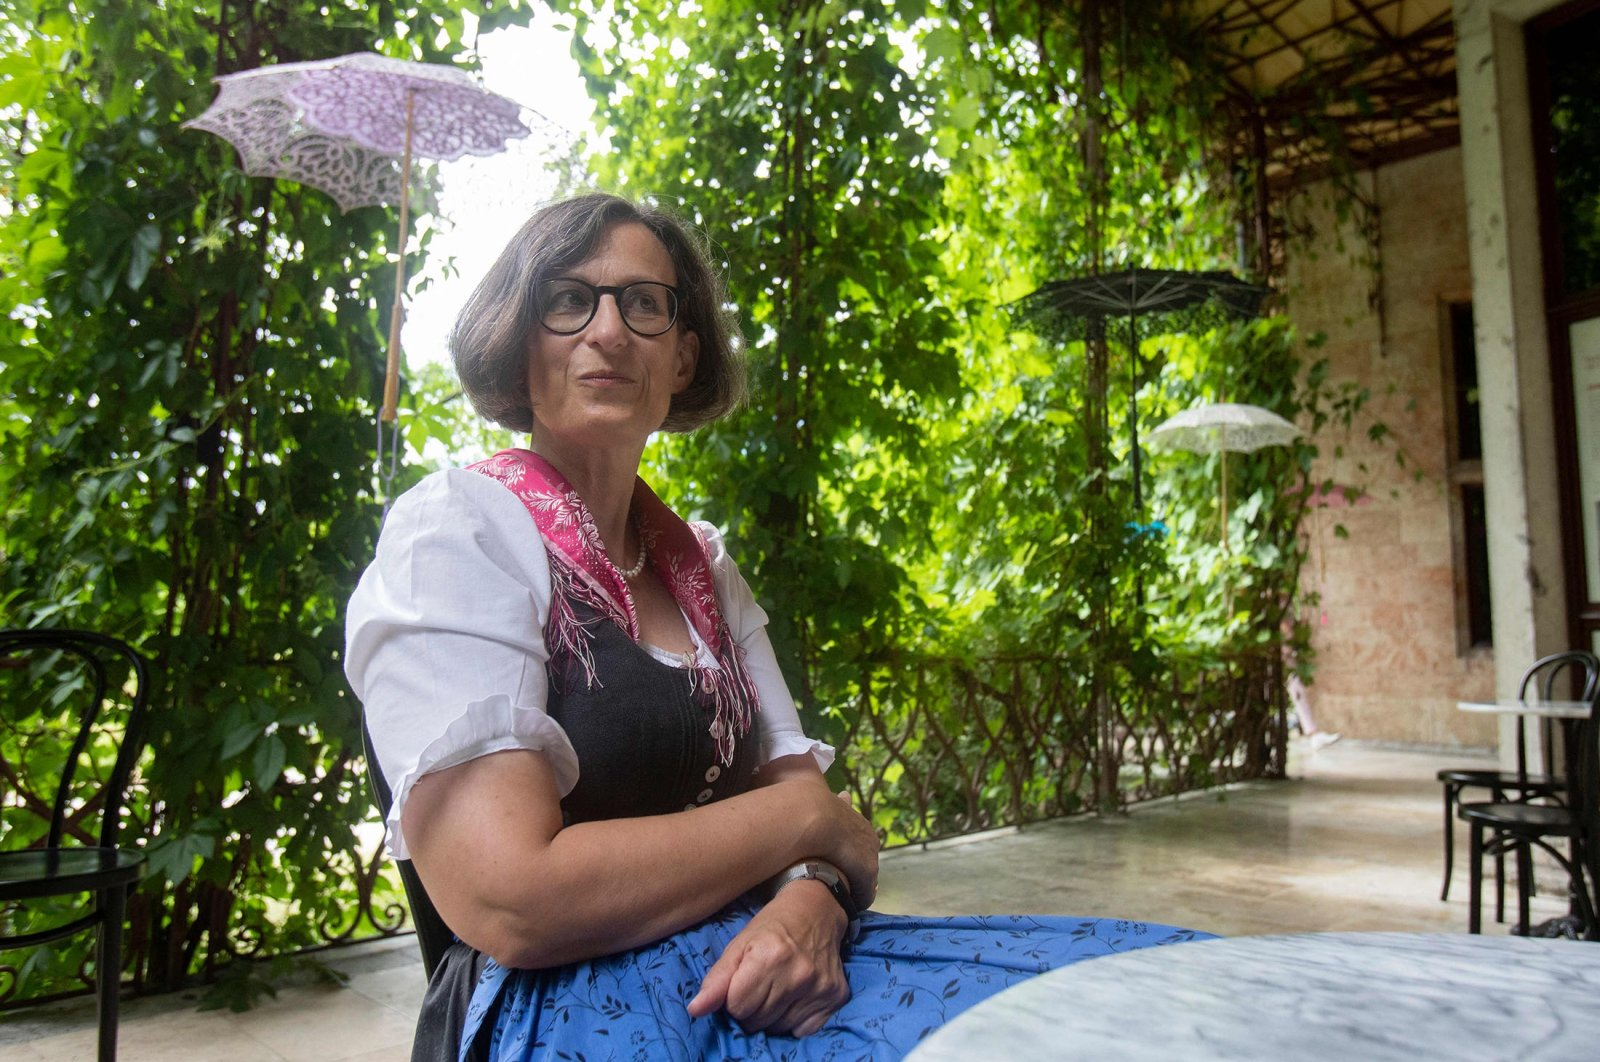 """Thekla Weissengruber, curator of the exhibition """"Dirndl – Tradition goes fashion"""" on display at the Mamorschloessl palace in Bad Ischl, Upper Austria, poses for a photo, June 24, 2021. (AFP Photo)"""